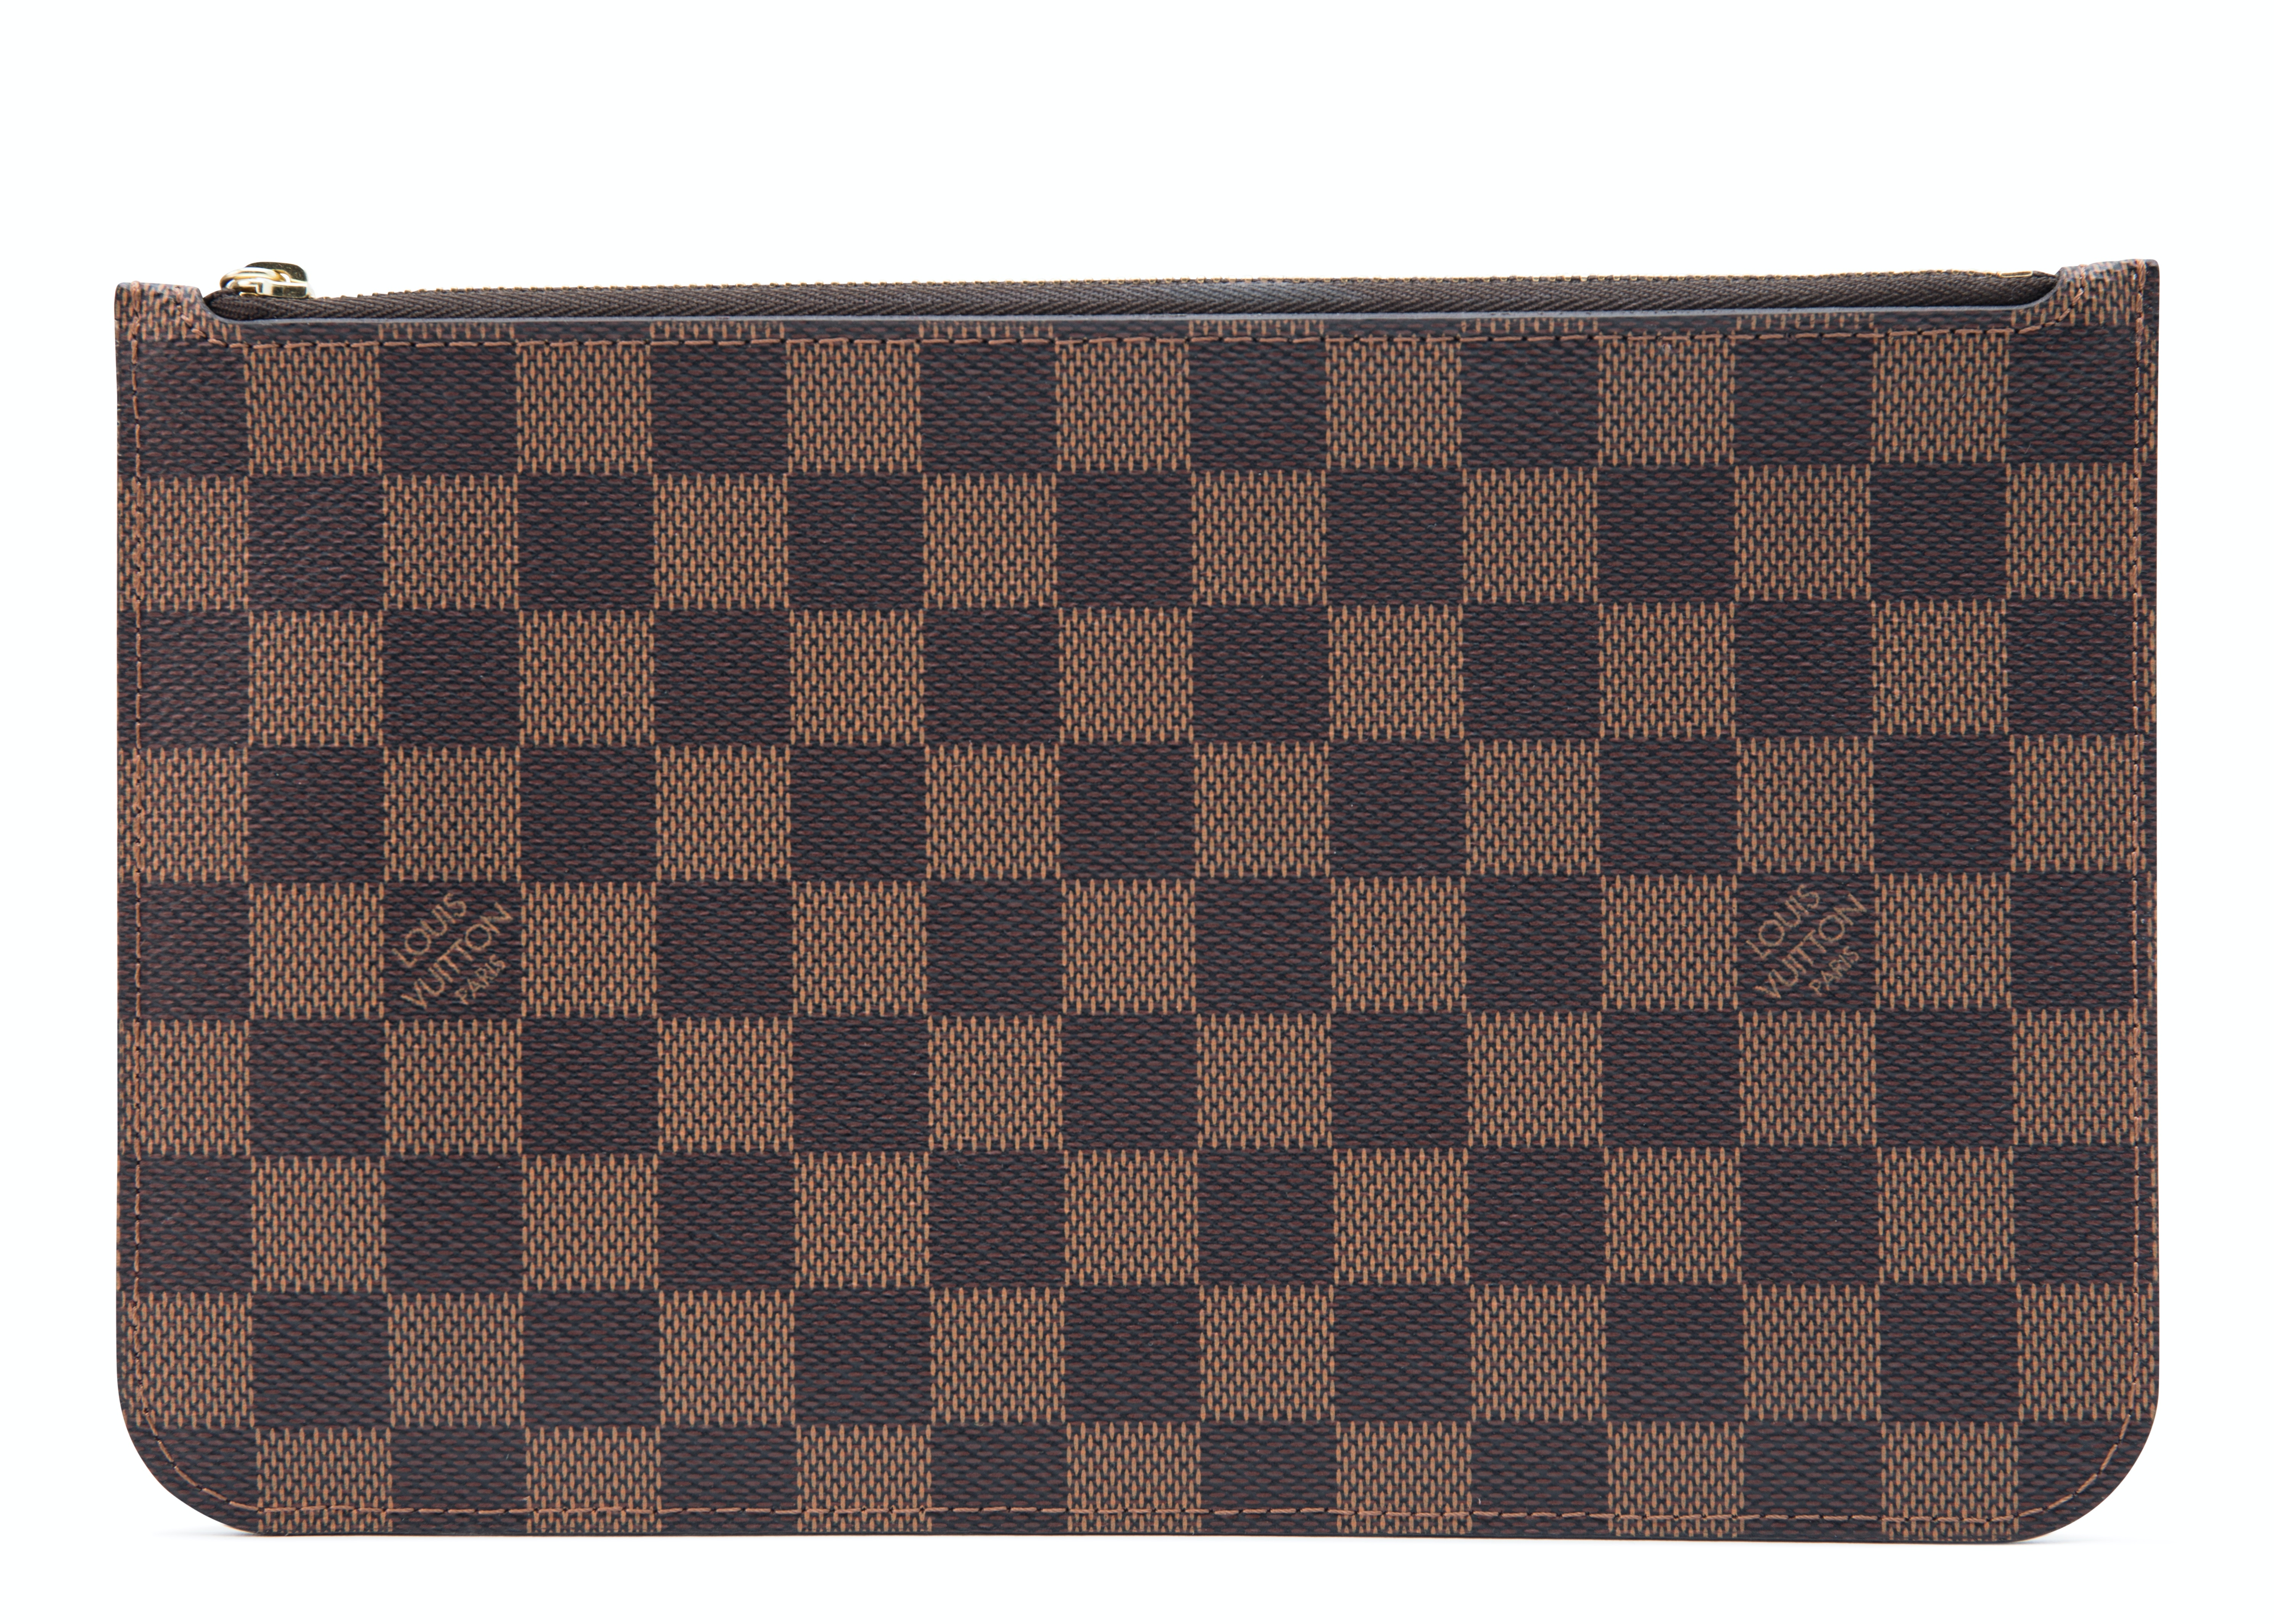 Louis Vuitton Neverfull Pochette Damier Ebene (Without Strap) Brown